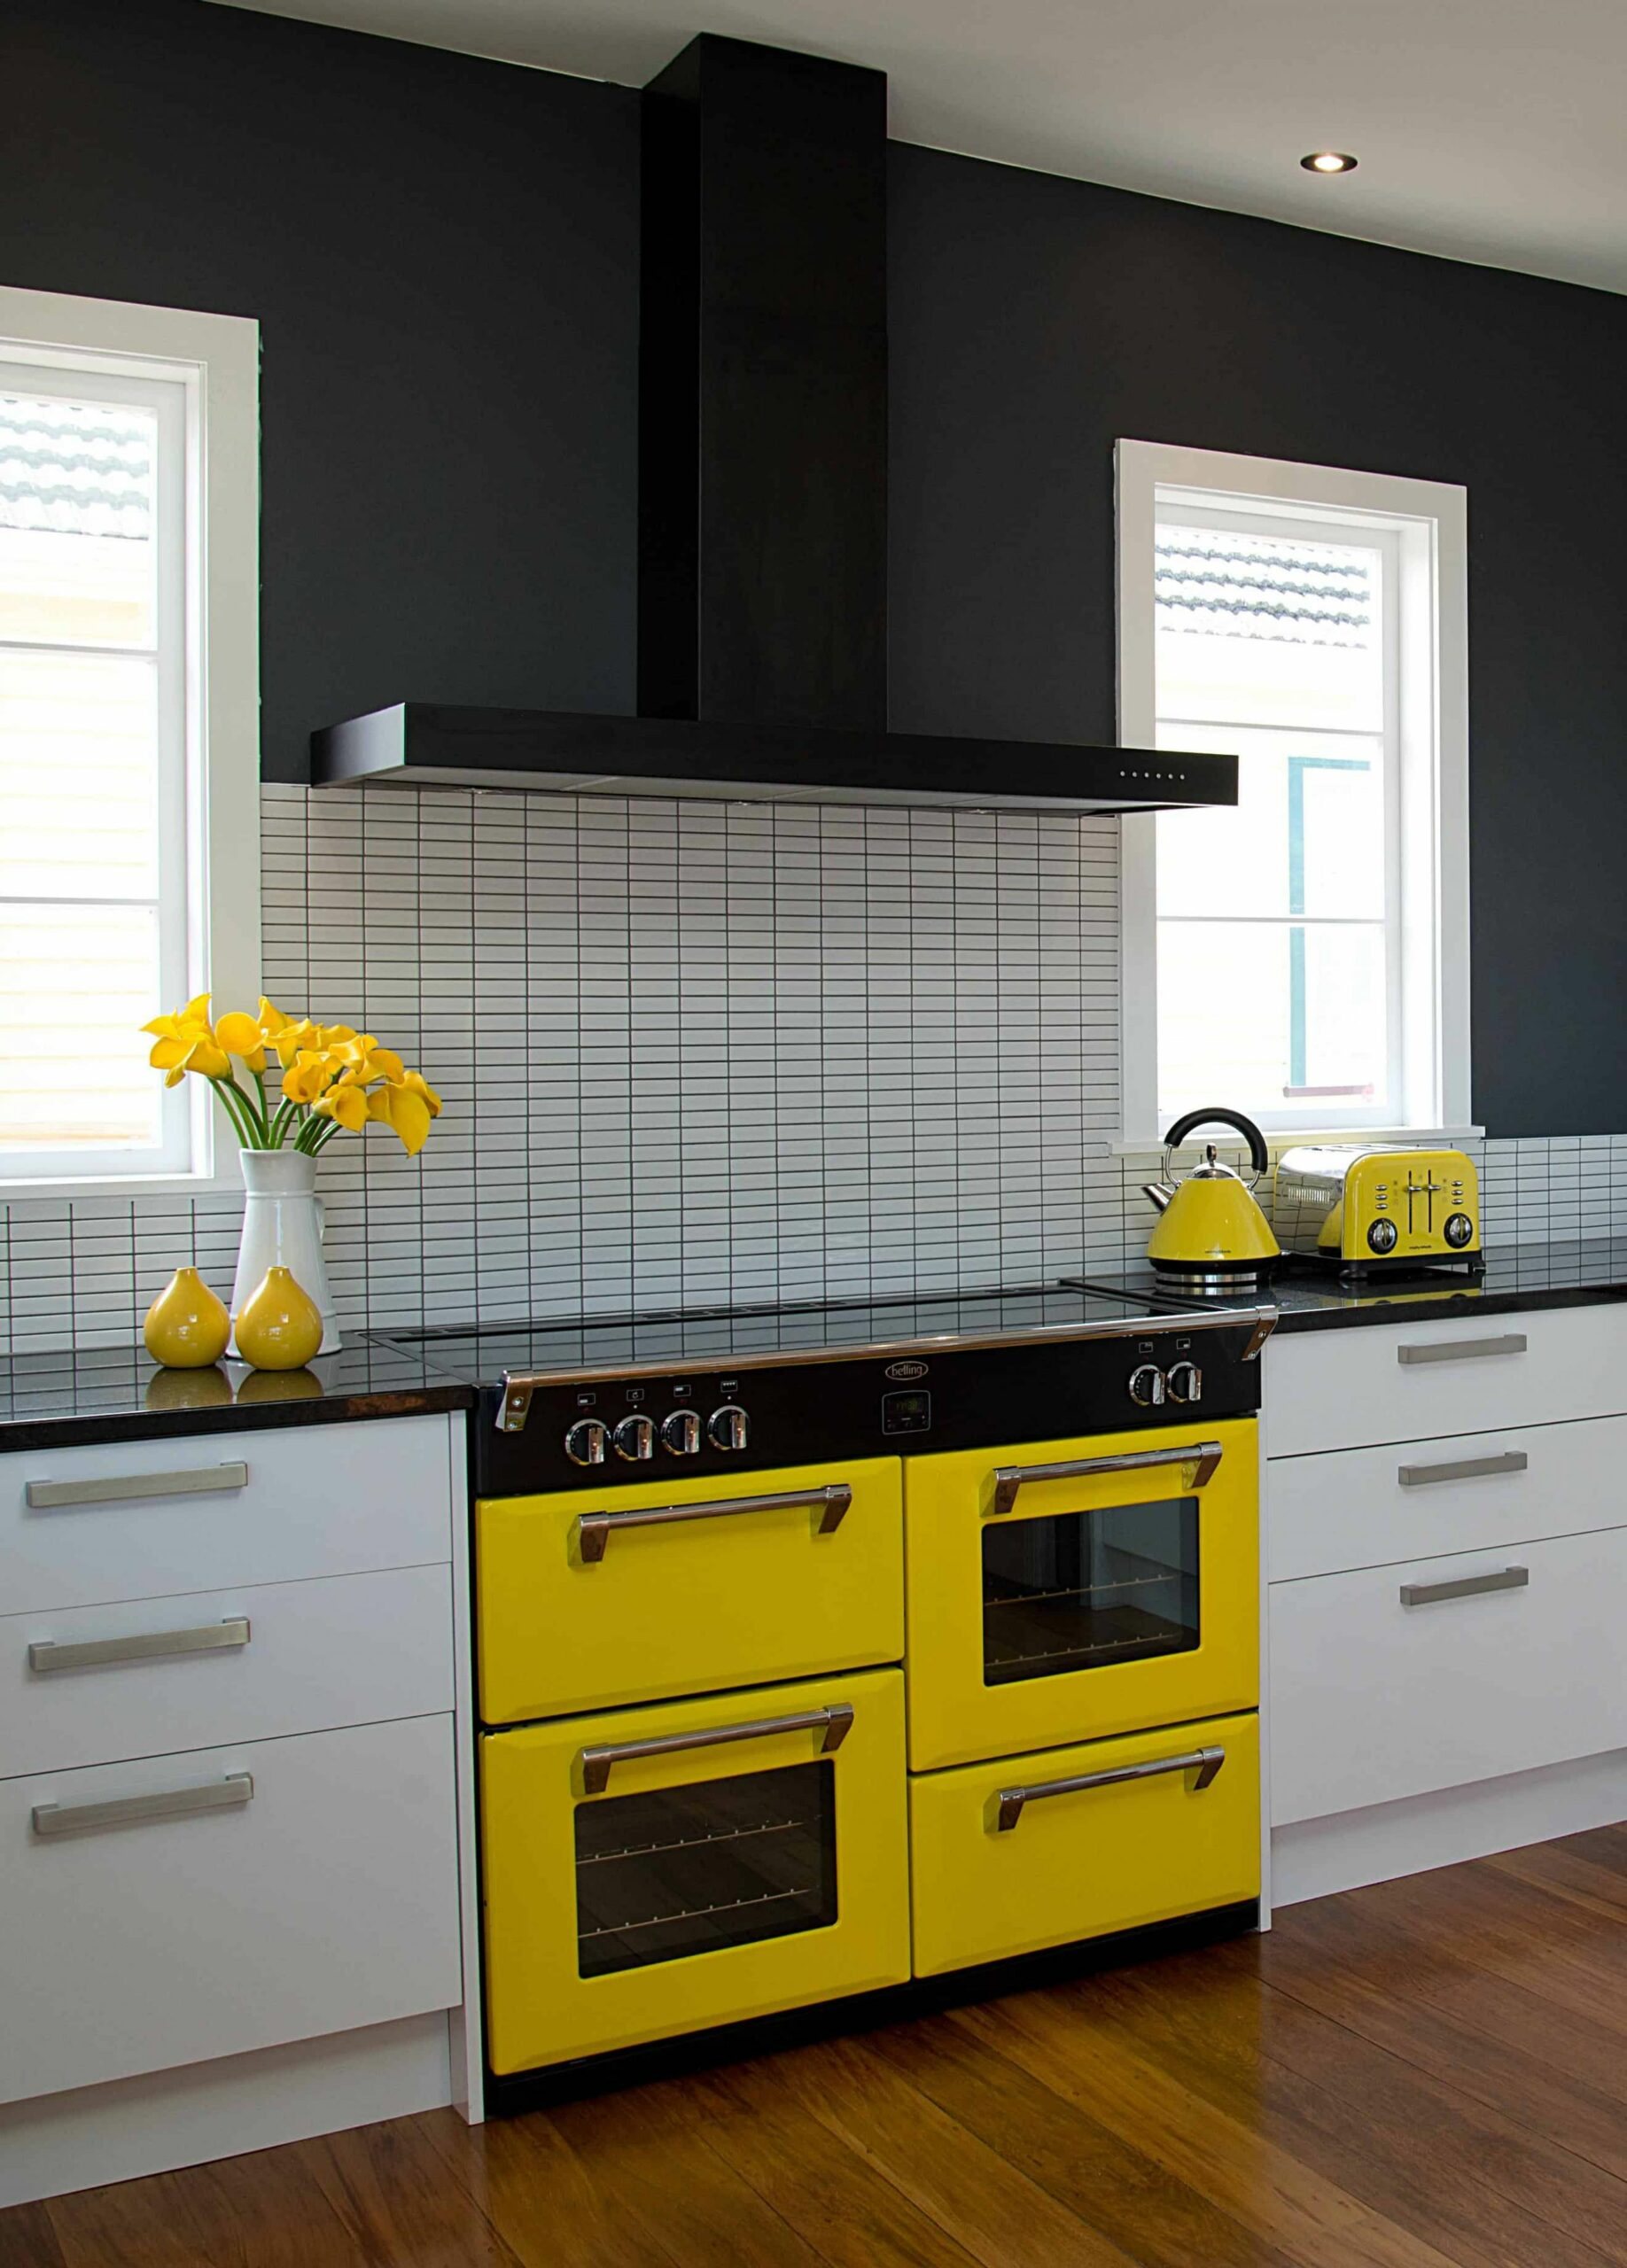 9 Yellow kitchen ideas that will brighten your home